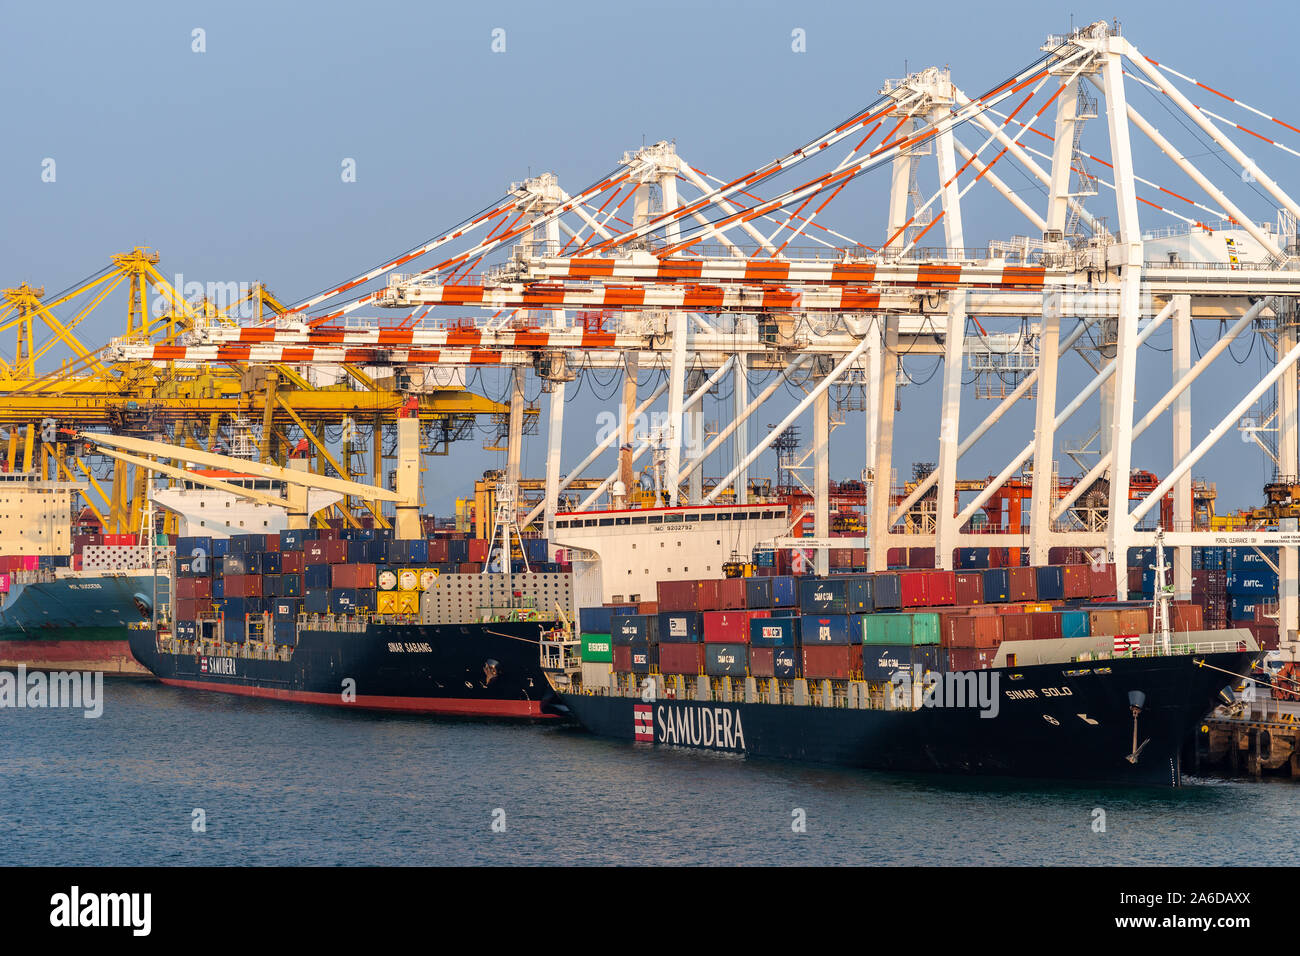 Laem Chabang seaport, Thailand - March 17, 2019: Two black and red Samudera container ship, Sinar Solo and Sinar Sabang, Singapore flagged, being work Stock Photo